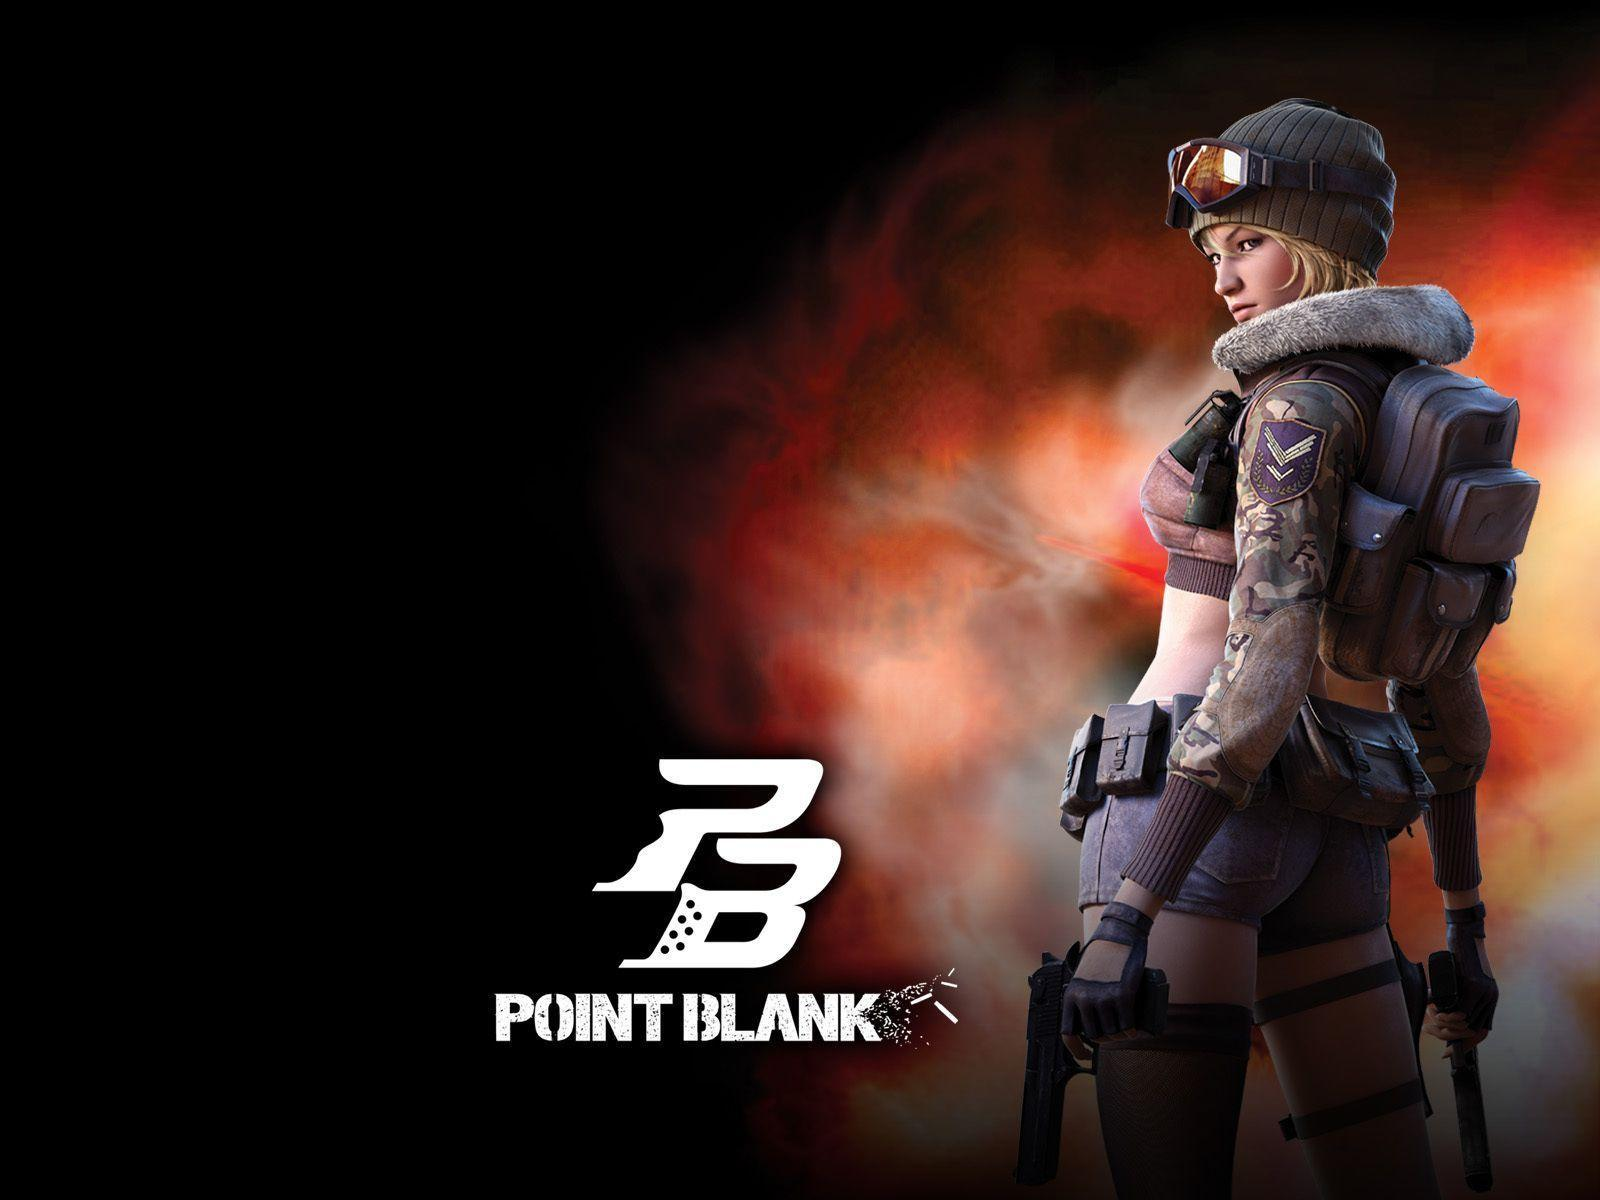 Wallpapers Point Blank Terbaru 2016   Wa 1025866   PNG Images   PNGio 1600x1200